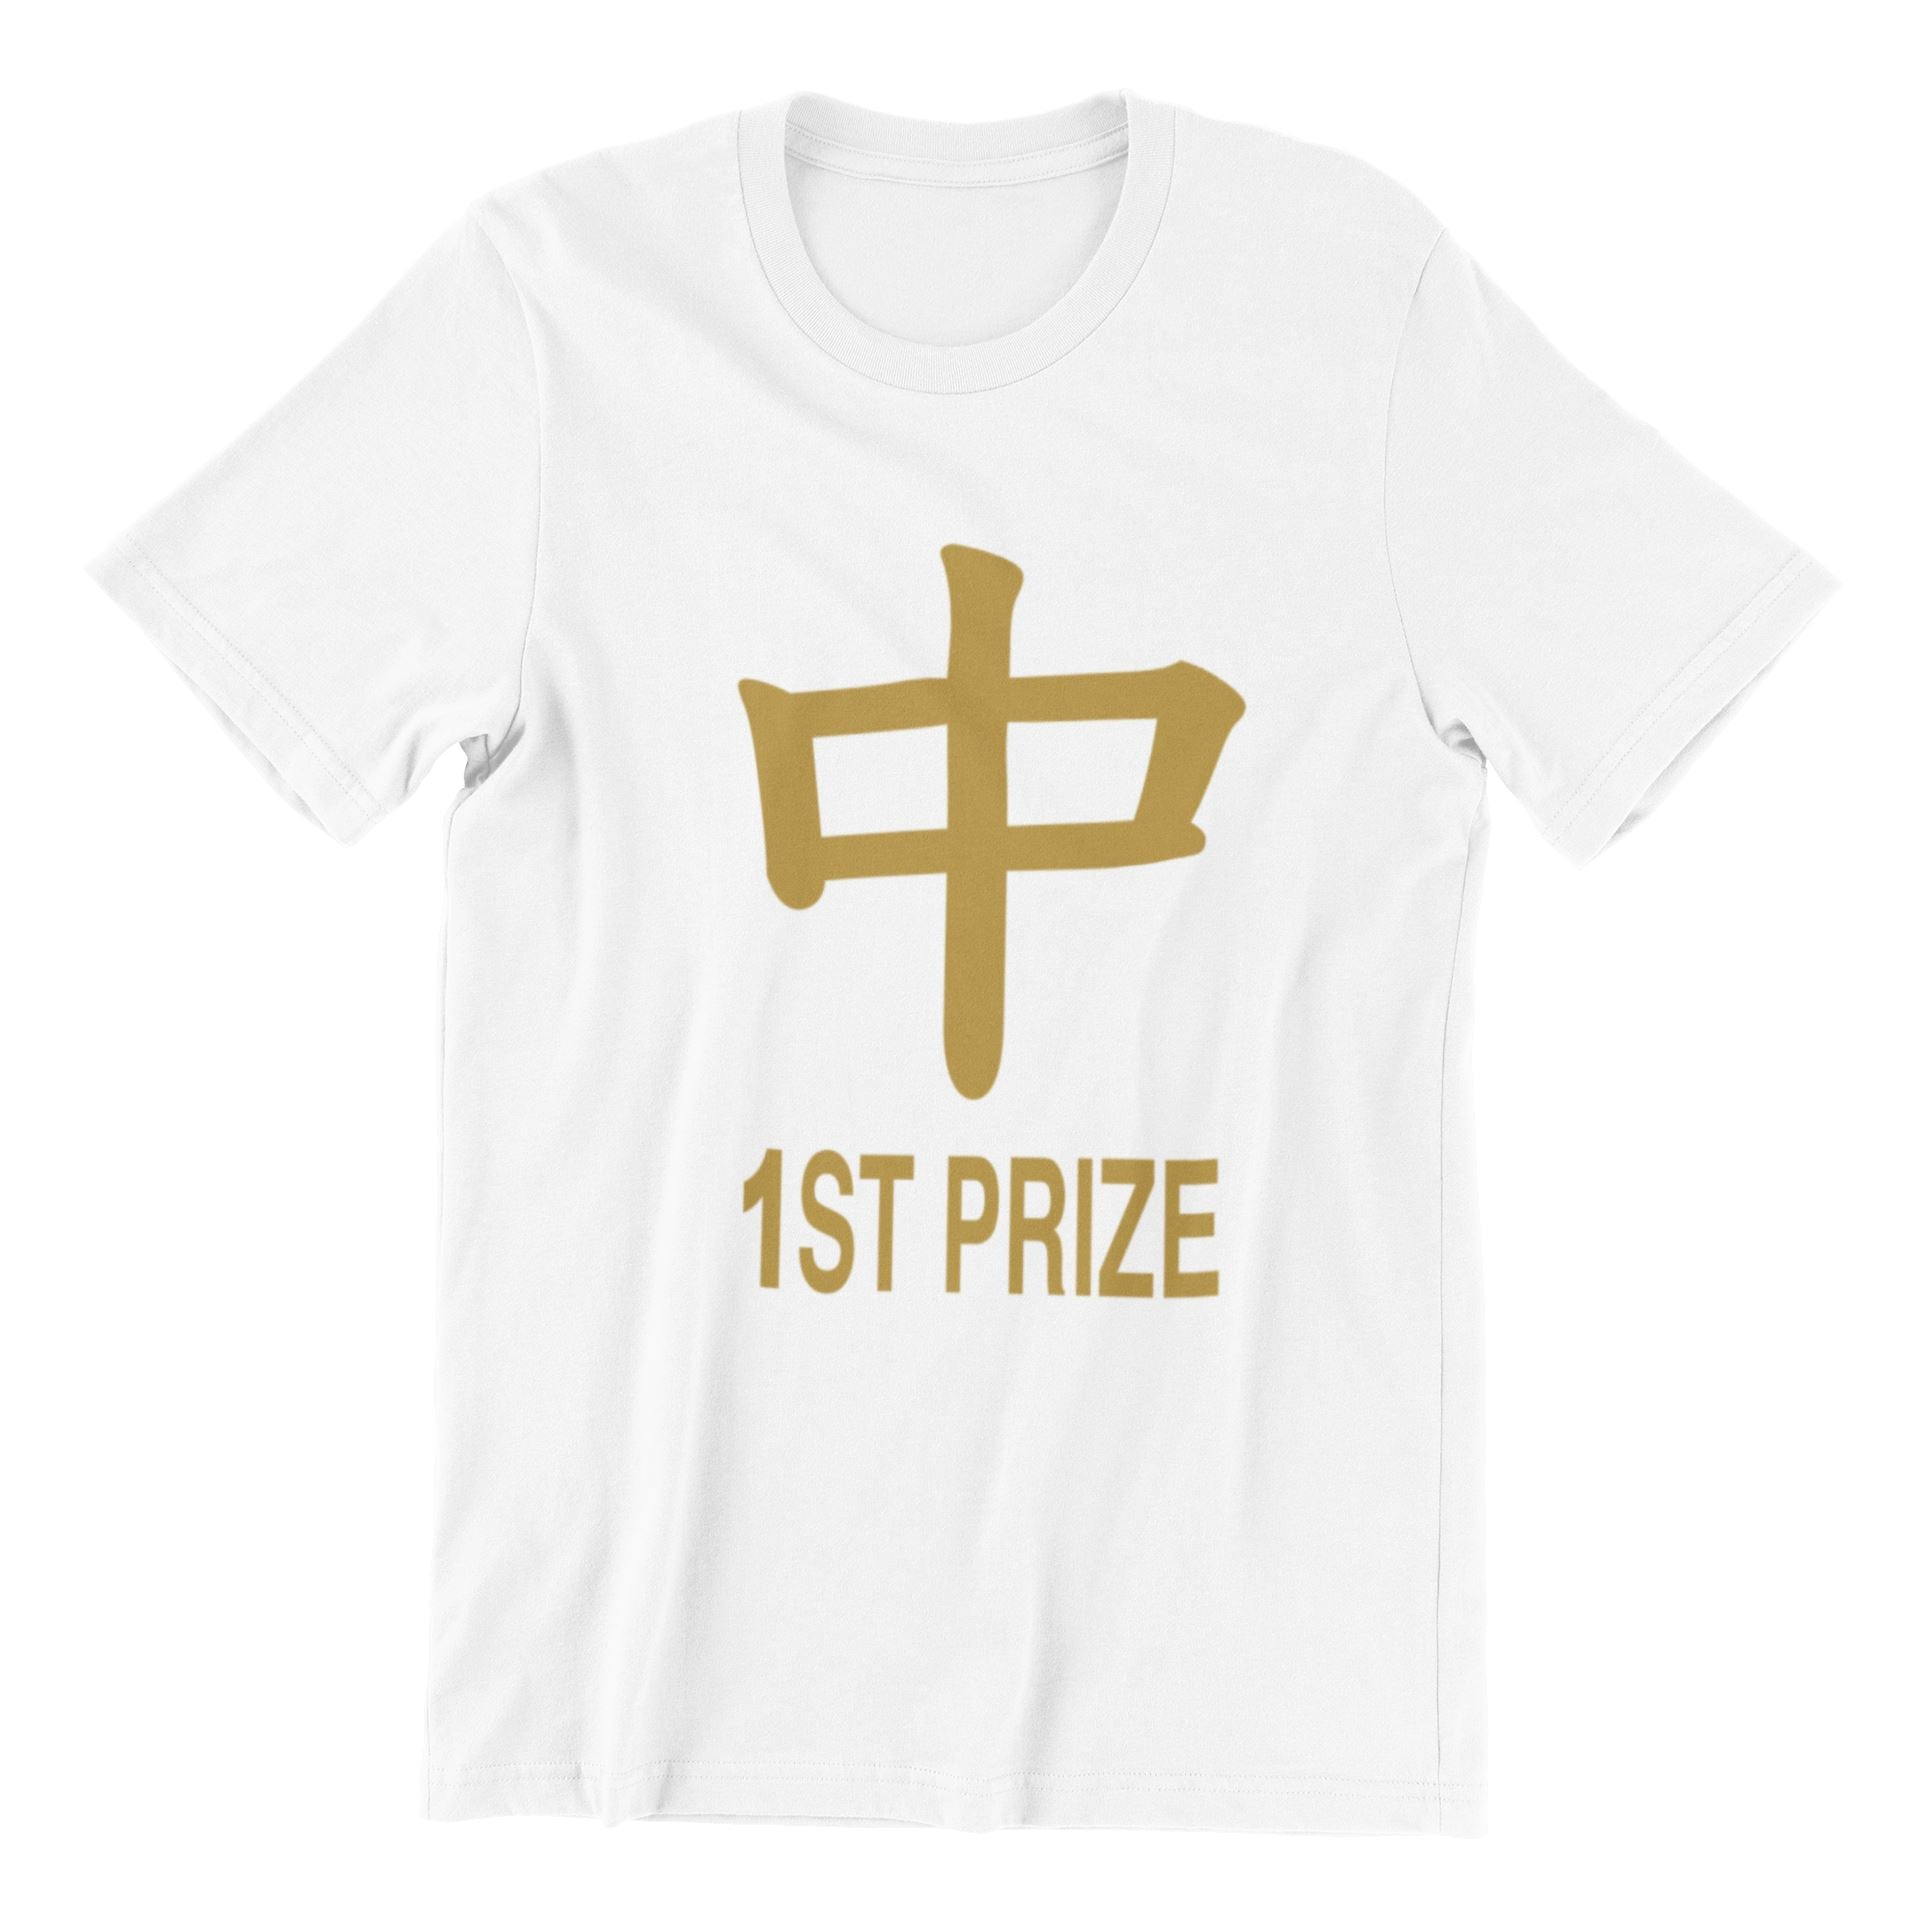 Strike 4D 1st Prize CNY Edition T-shirt (Kids) (Pre-Order) - Local Kids' Clothing - Wet Tee Shirt - Naiise